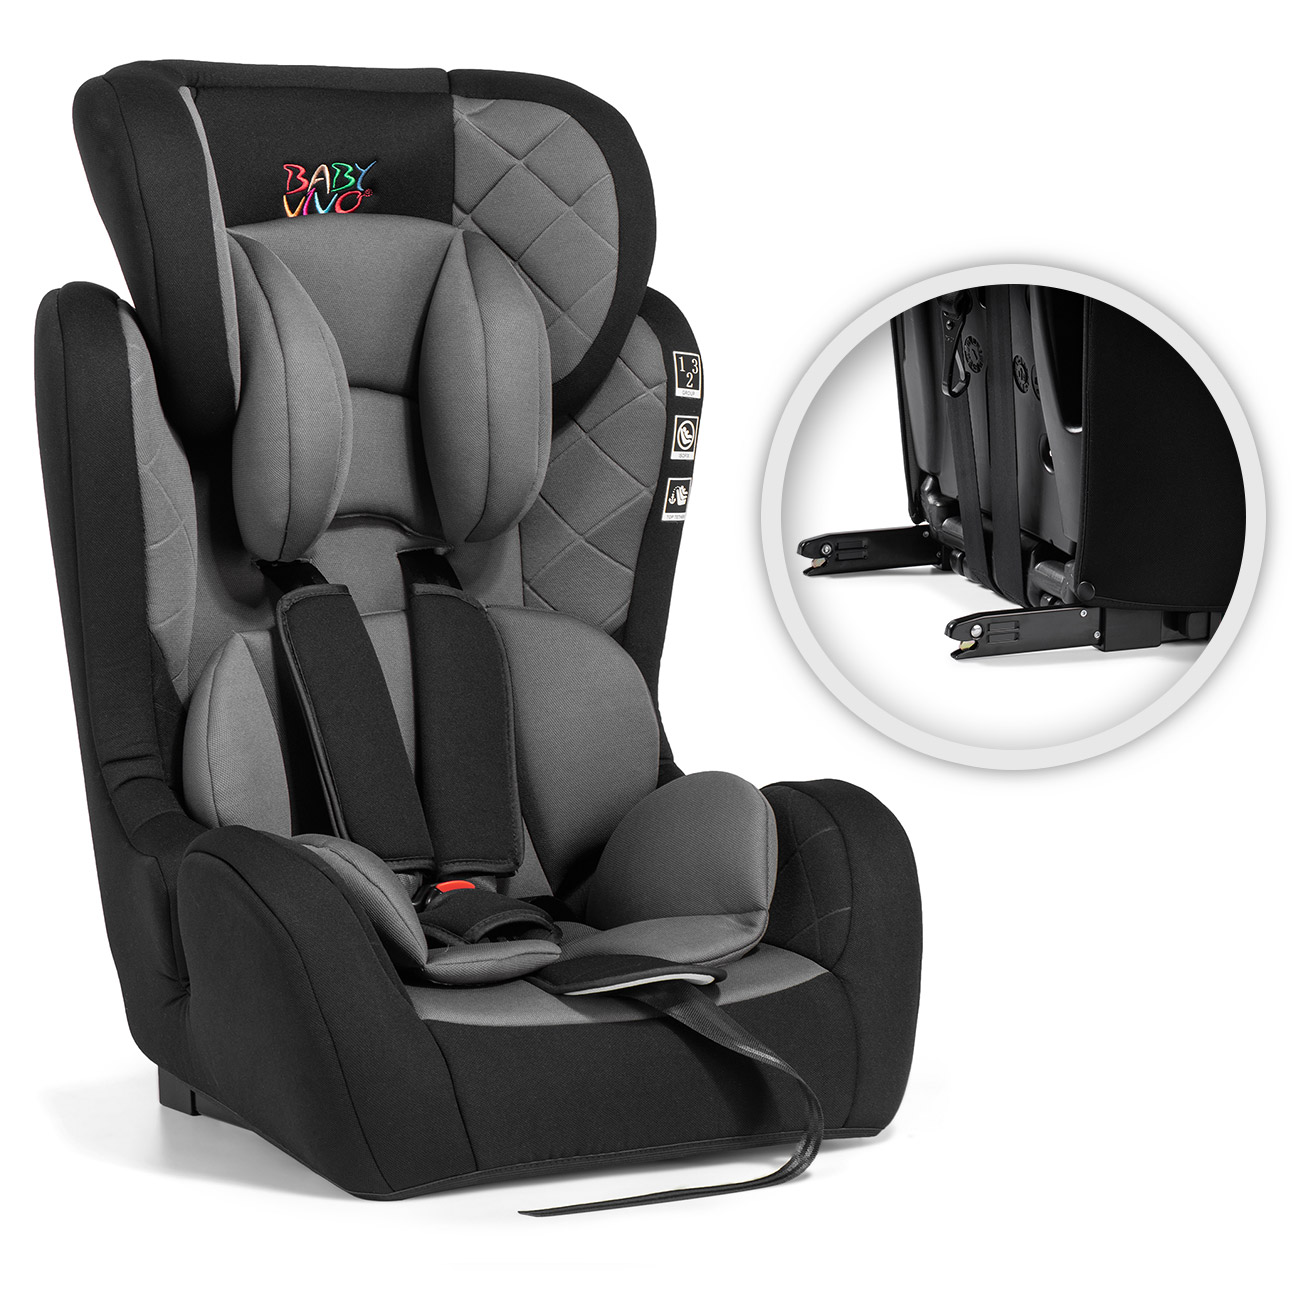 Baby Vivo ISOFIX Car Seat for Children